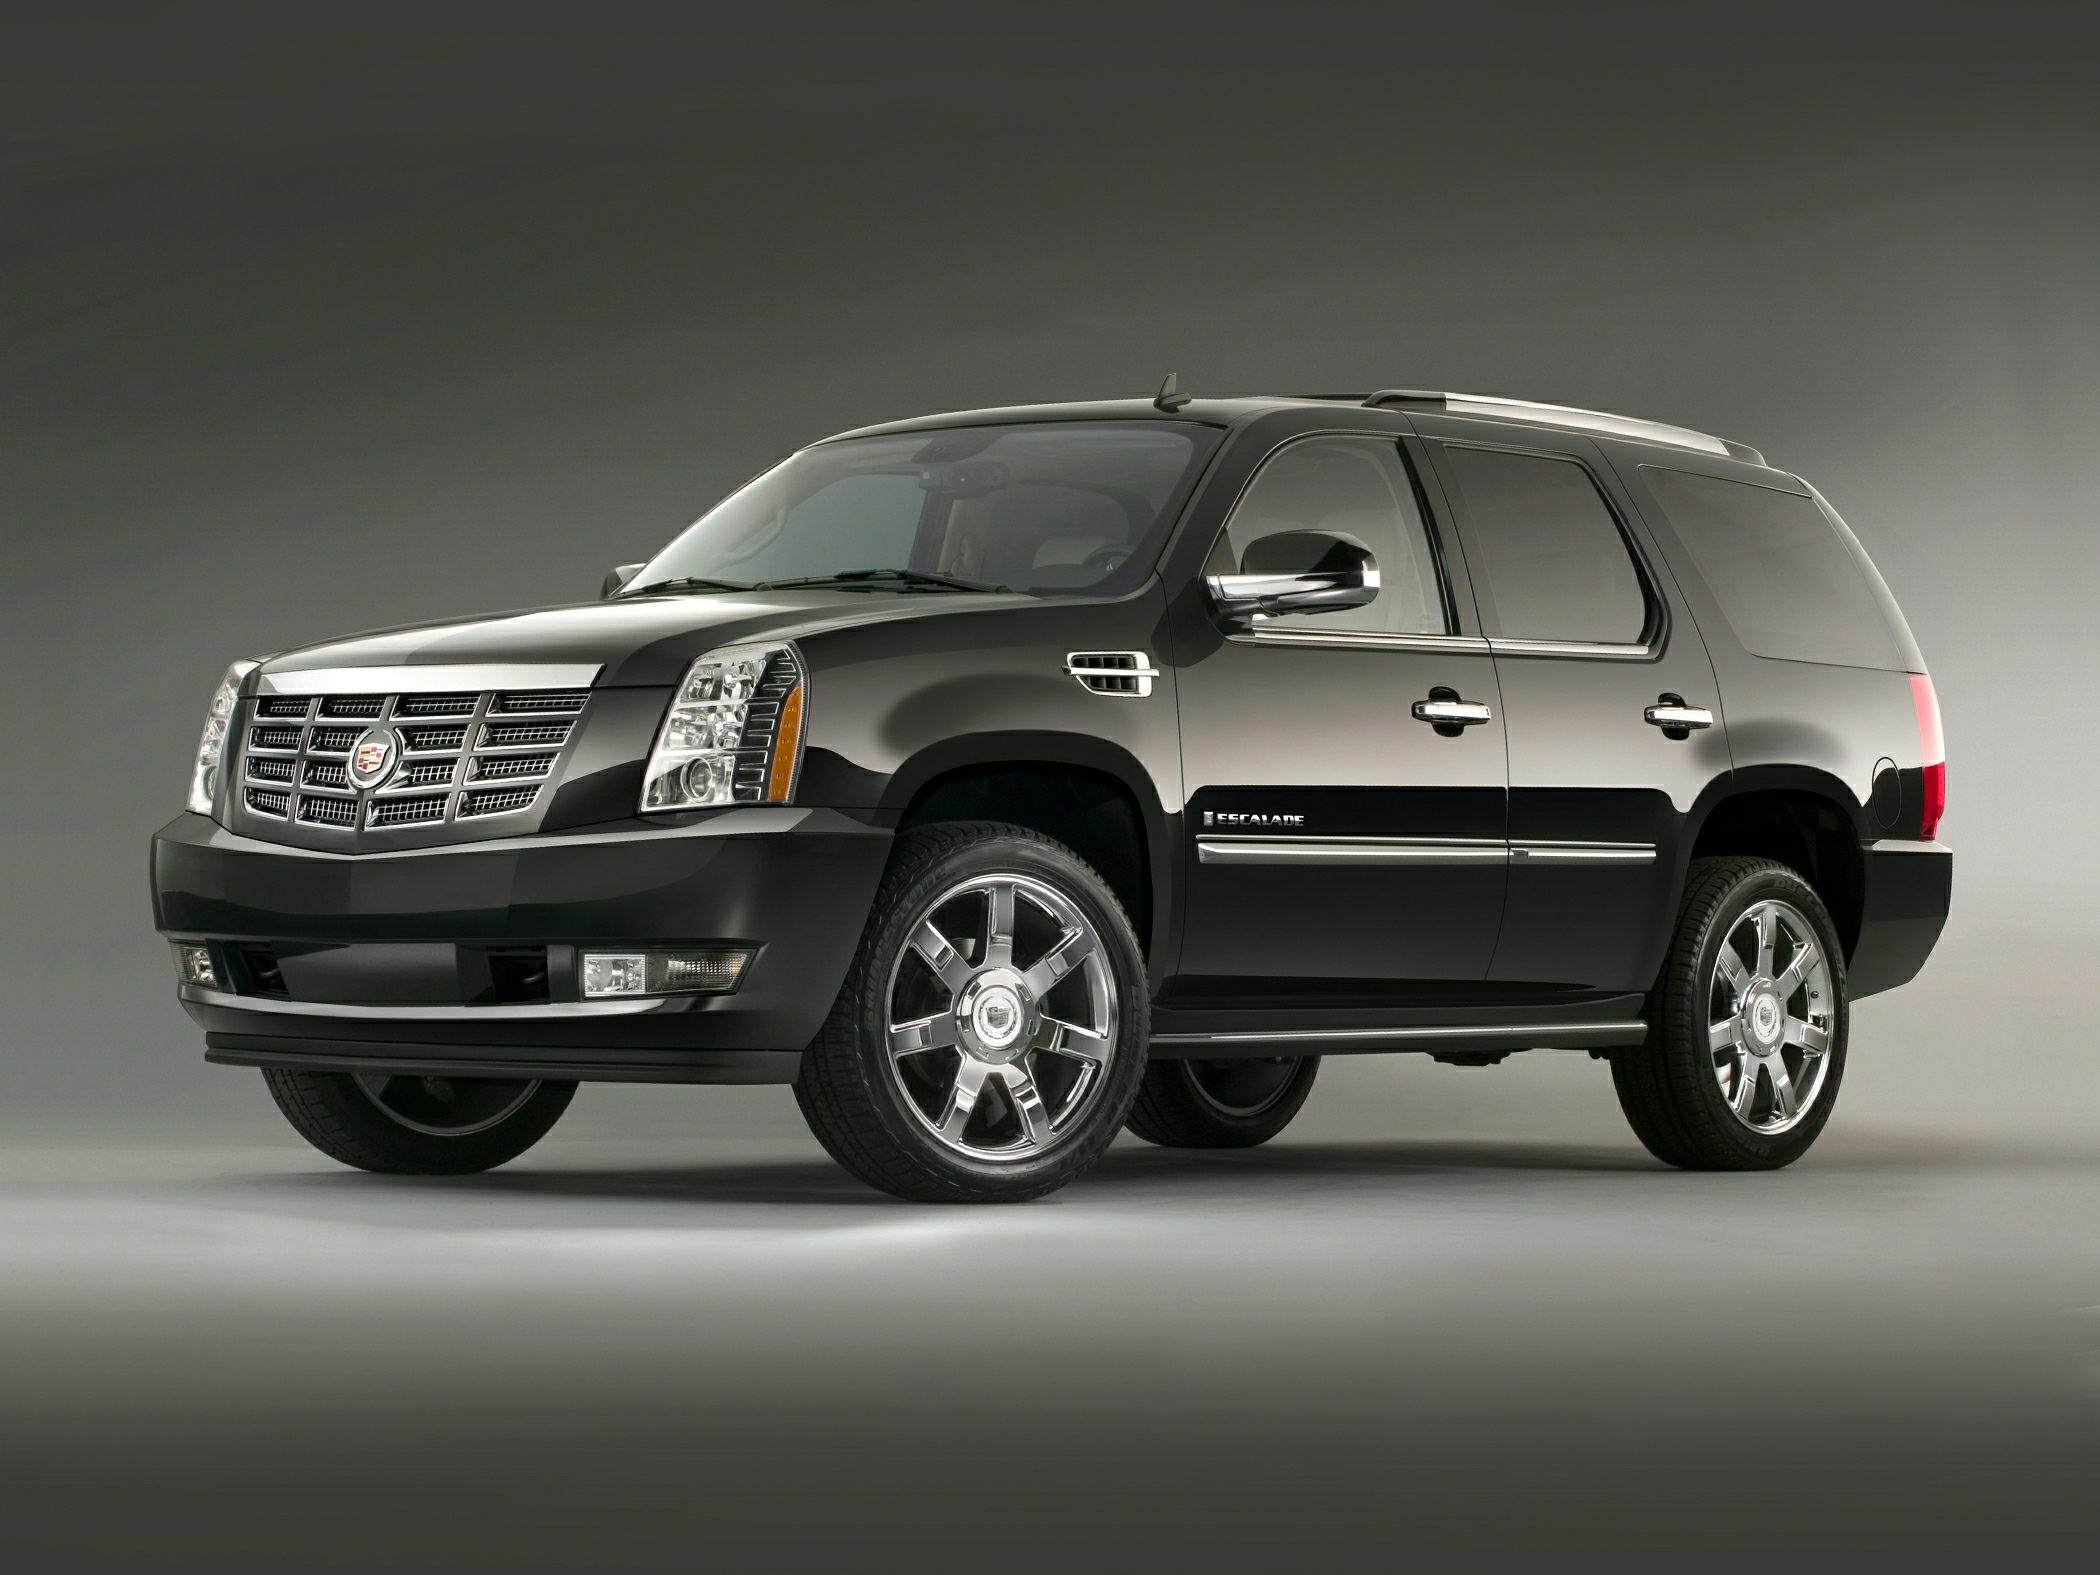 riding in style the 2014 cadillac escalade frosted fingers baking reviews chicago mom. Black Bedroom Furniture Sets. Home Design Ideas